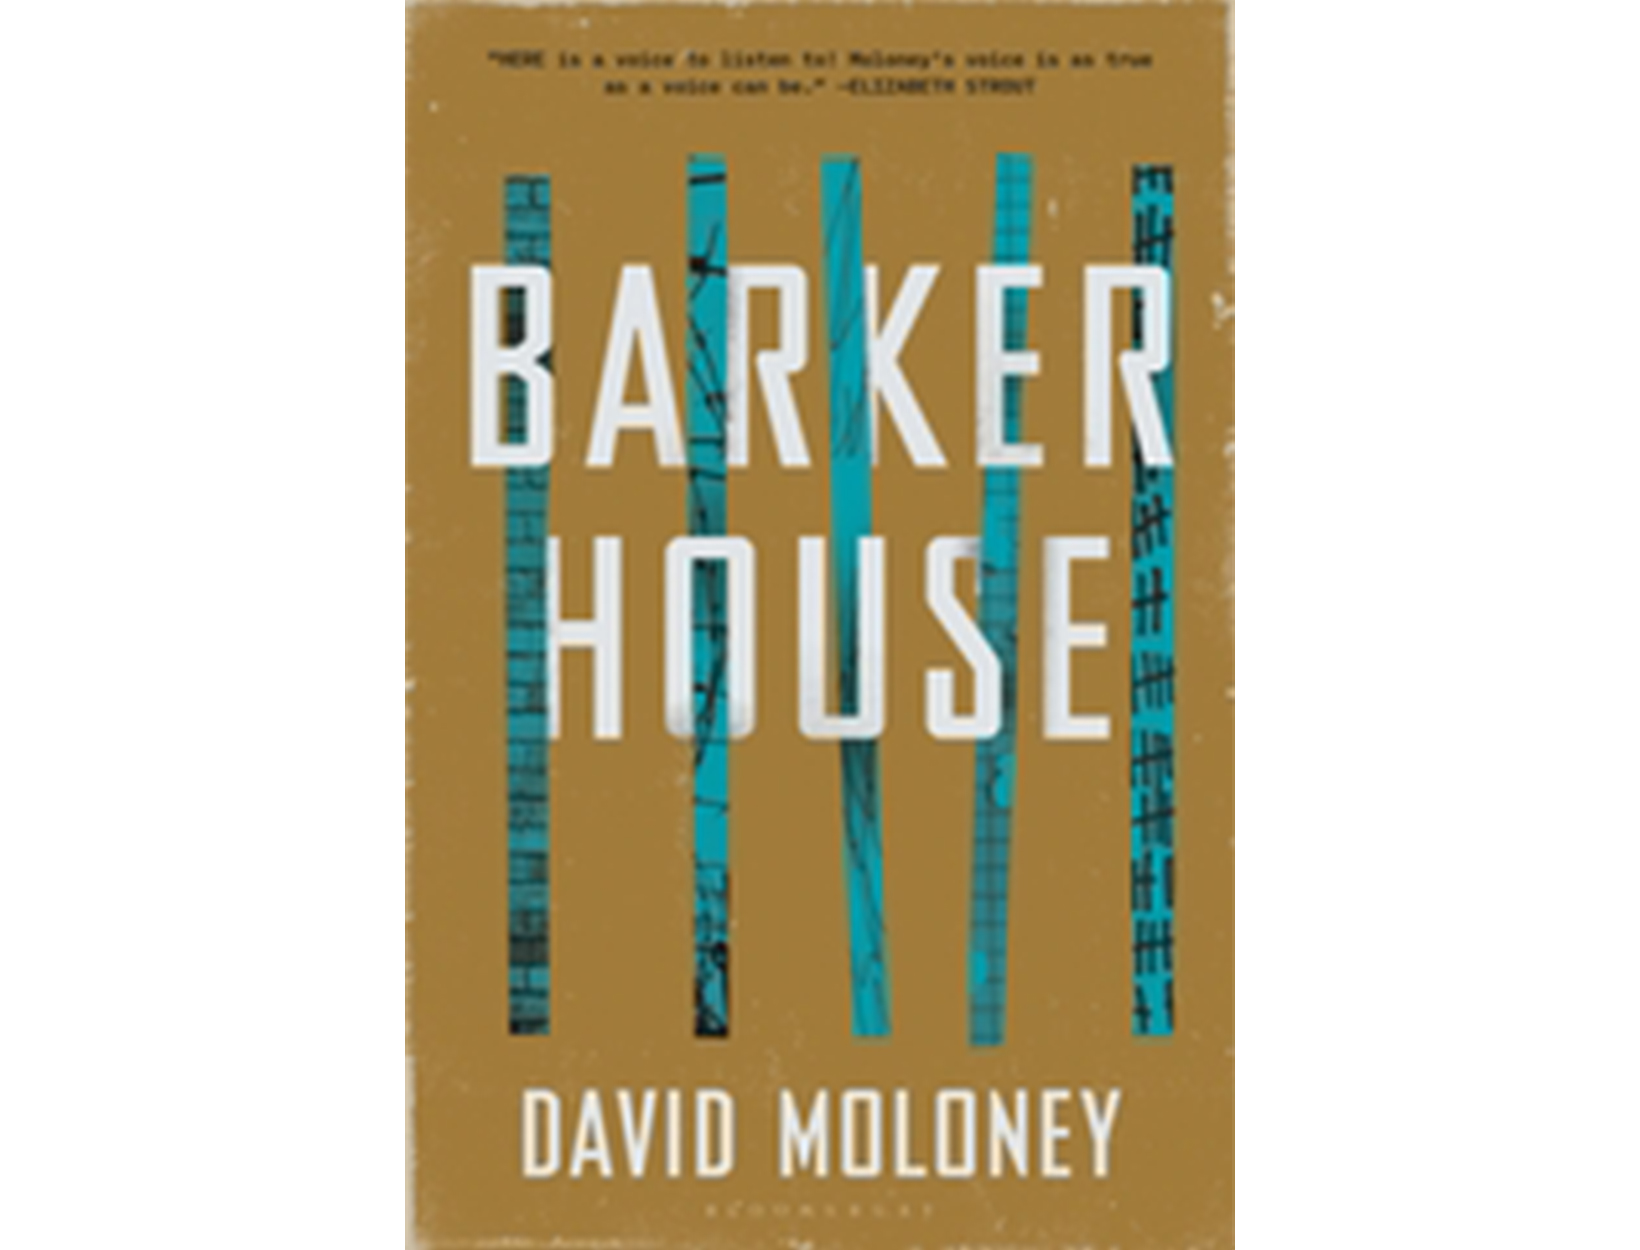 <em>Barker House</em> by David Moloney